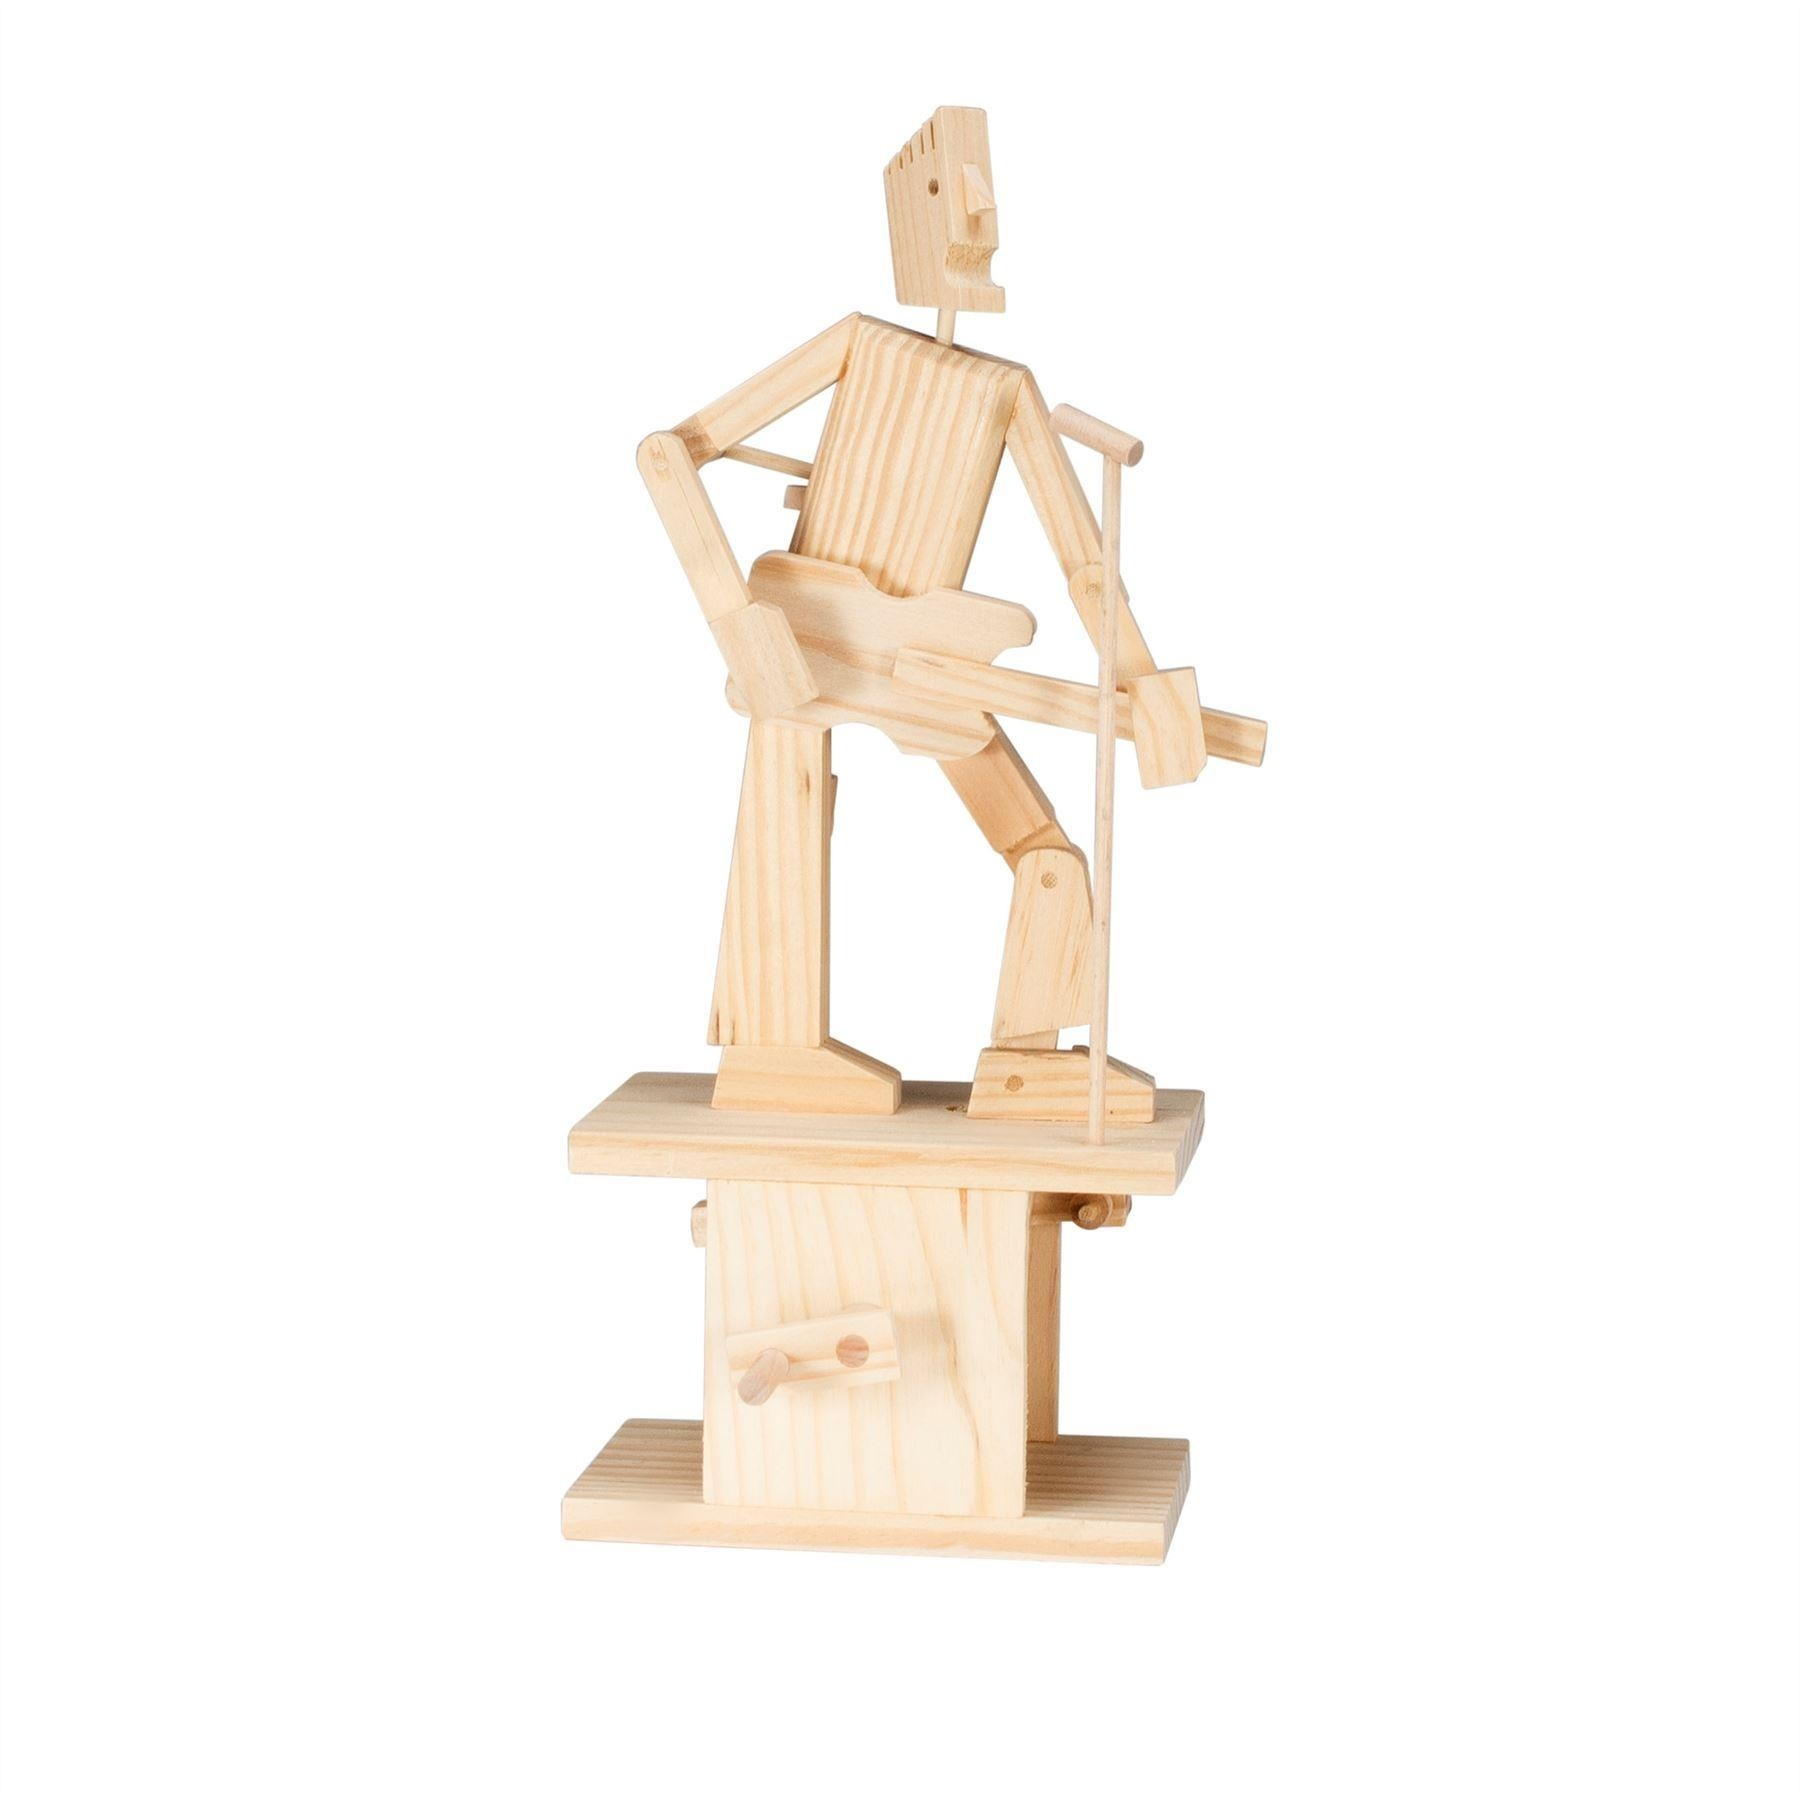 Timberkits Guitarist wooden model flatpack kit